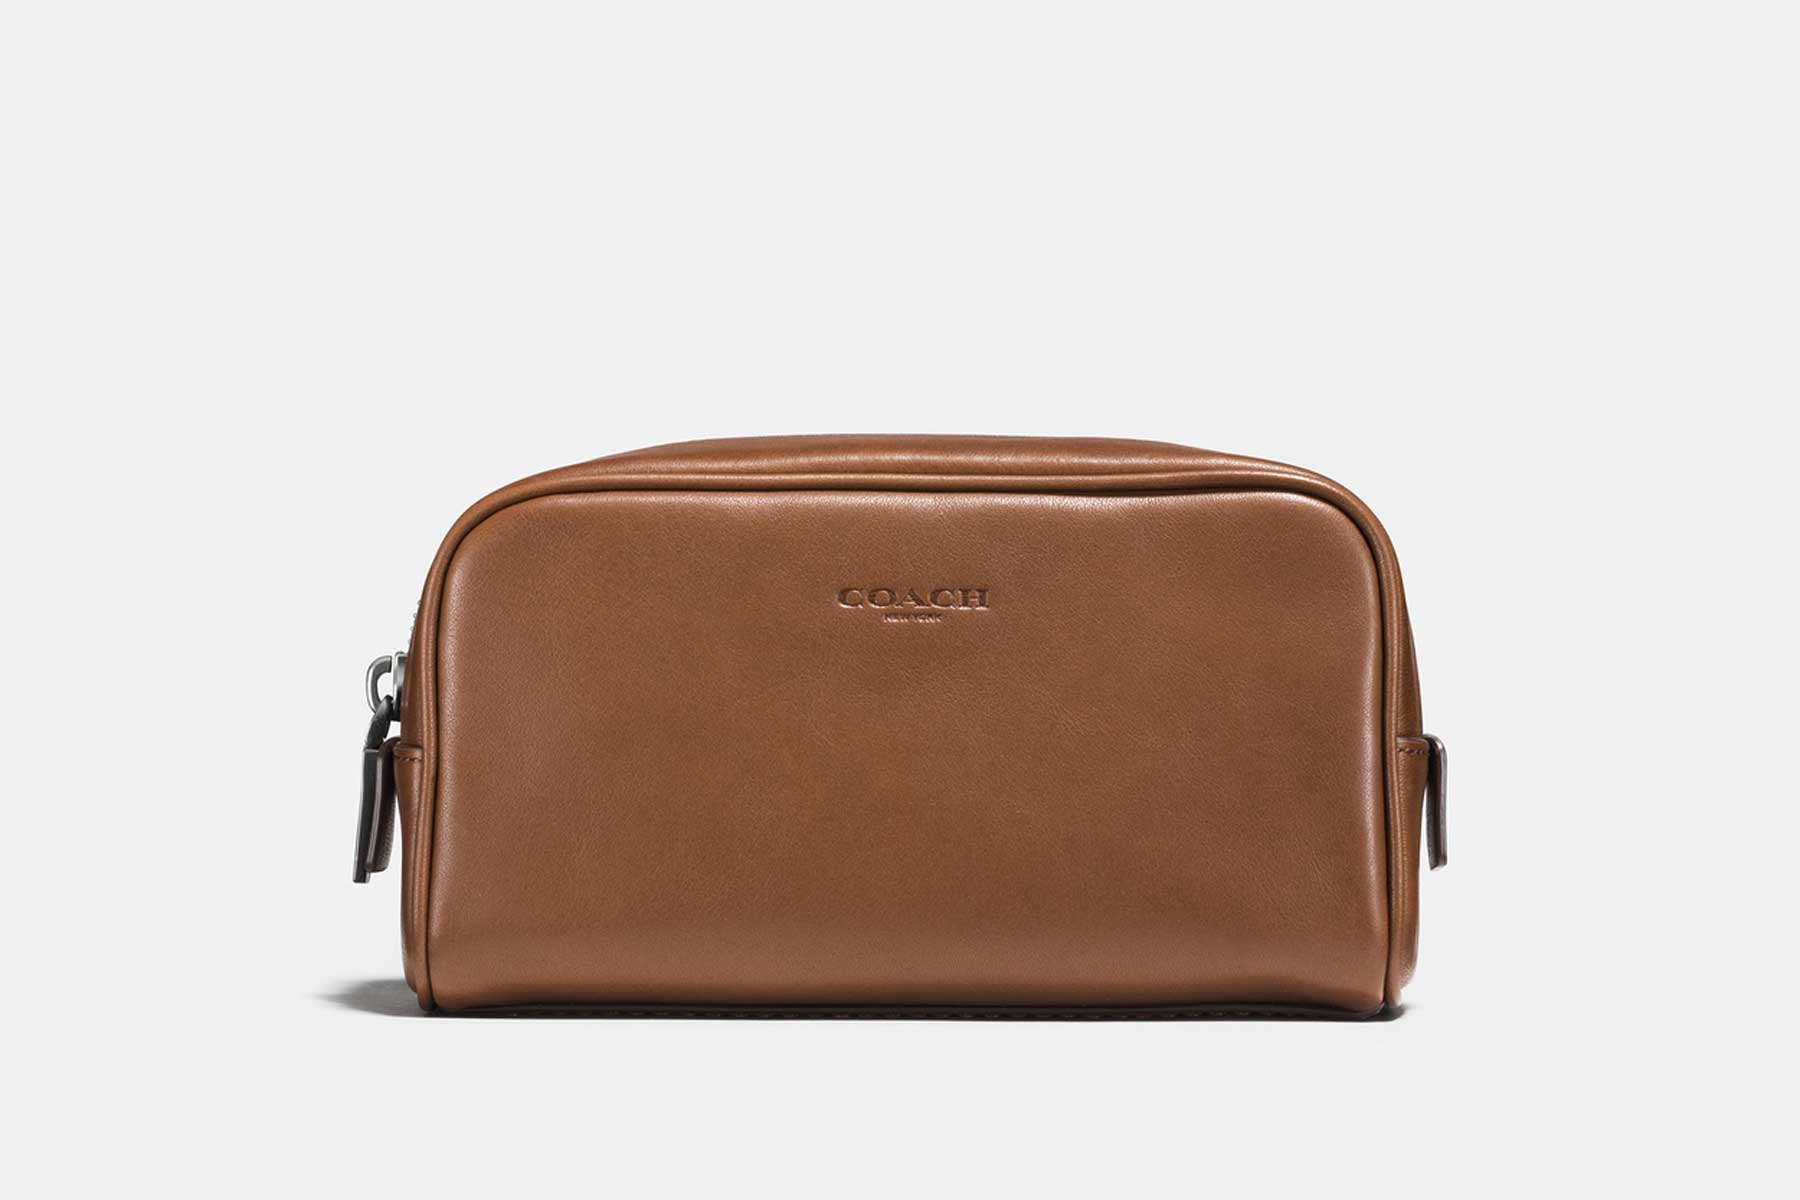 A brown leather Dopp kit made by Coach